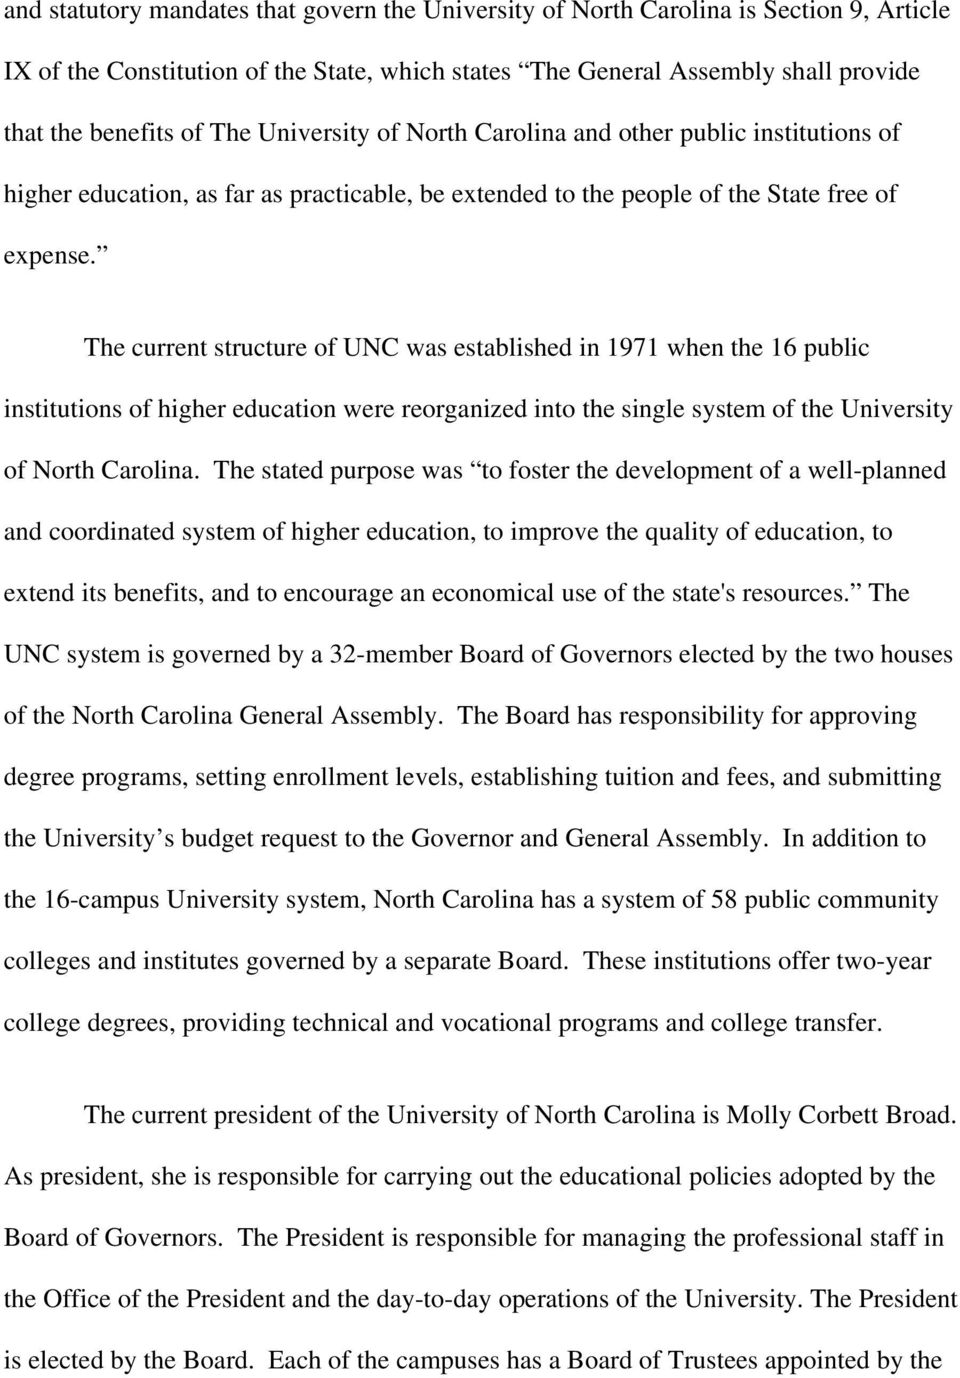 The current structure of UNC was established in 1971 when the 16 public institutions of higher education were reorganized into the single system of the University of North Carolina.